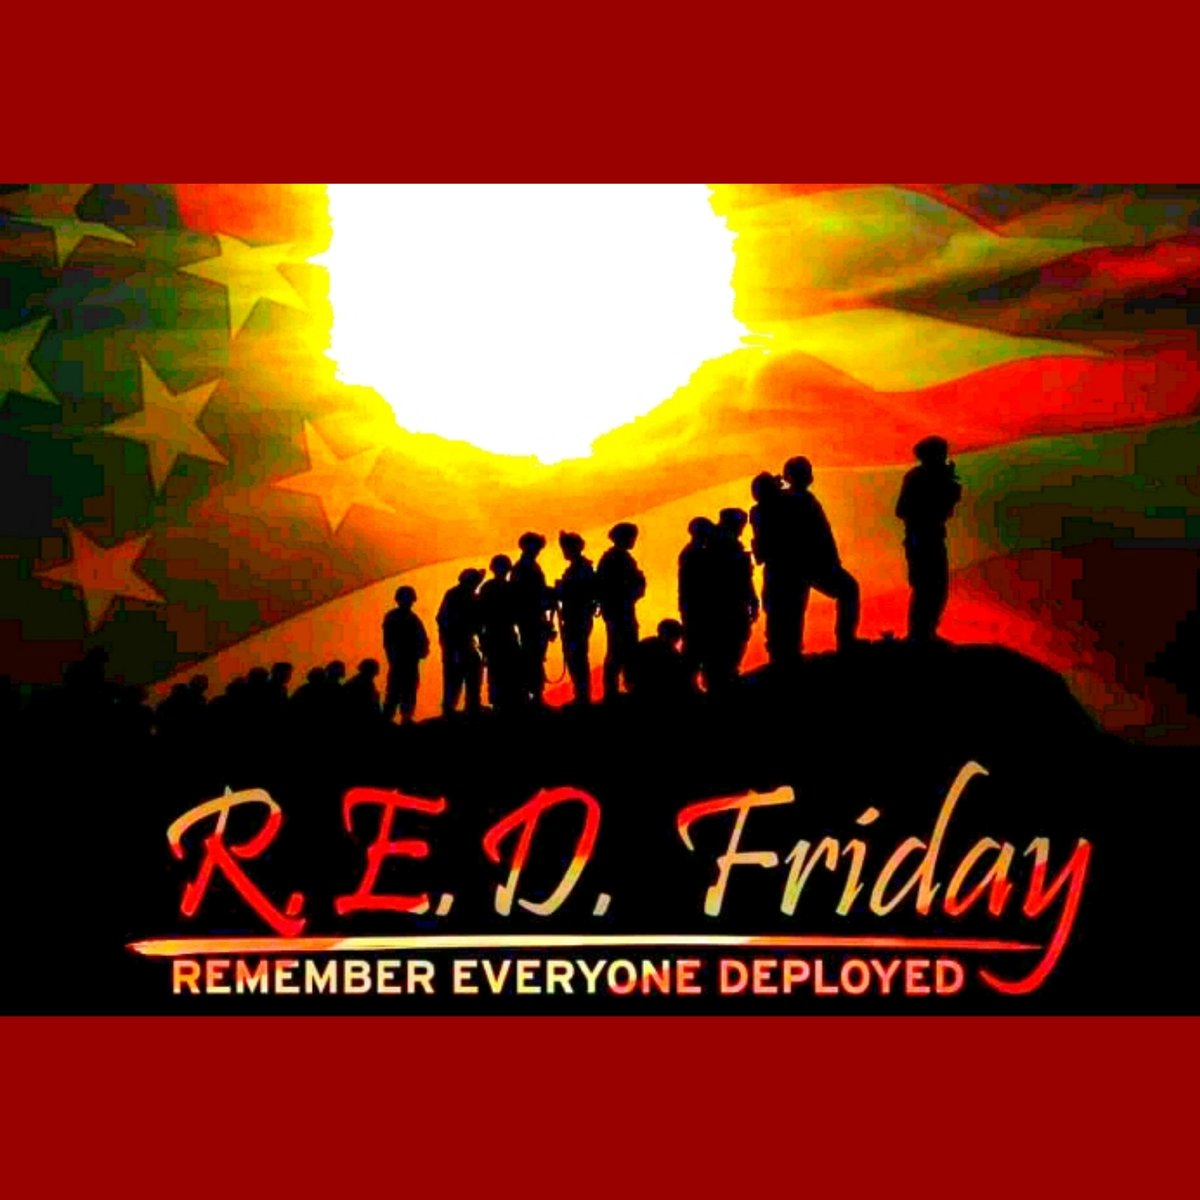 On Fridays we wear RED until they all come home  #REDFriday  #SupportOurTroops